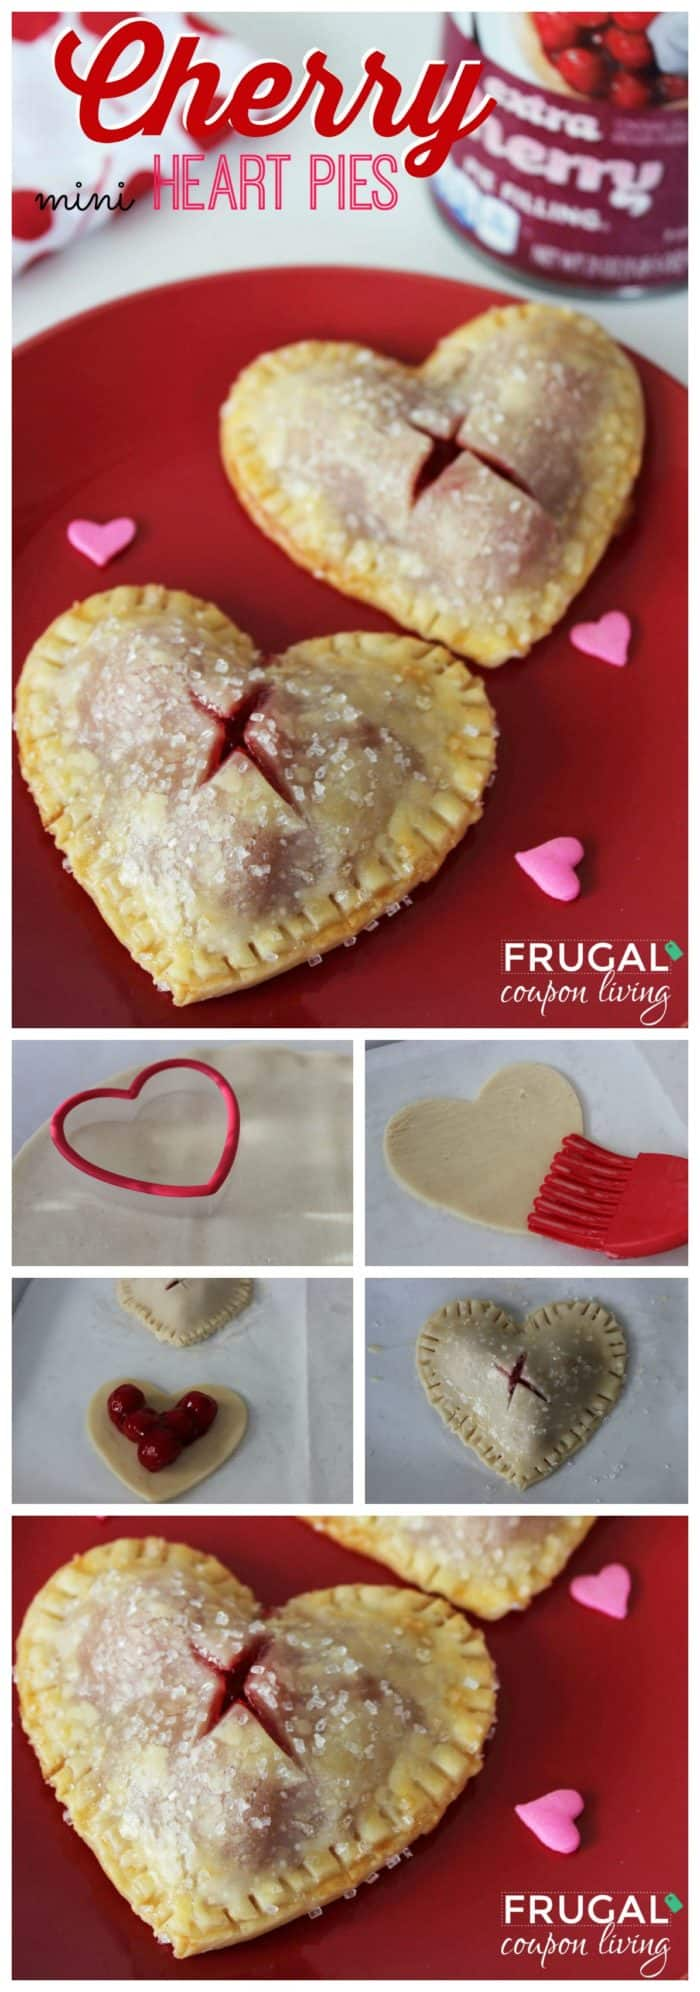 Cherry Heart Pies Dessert for Valentine's Day